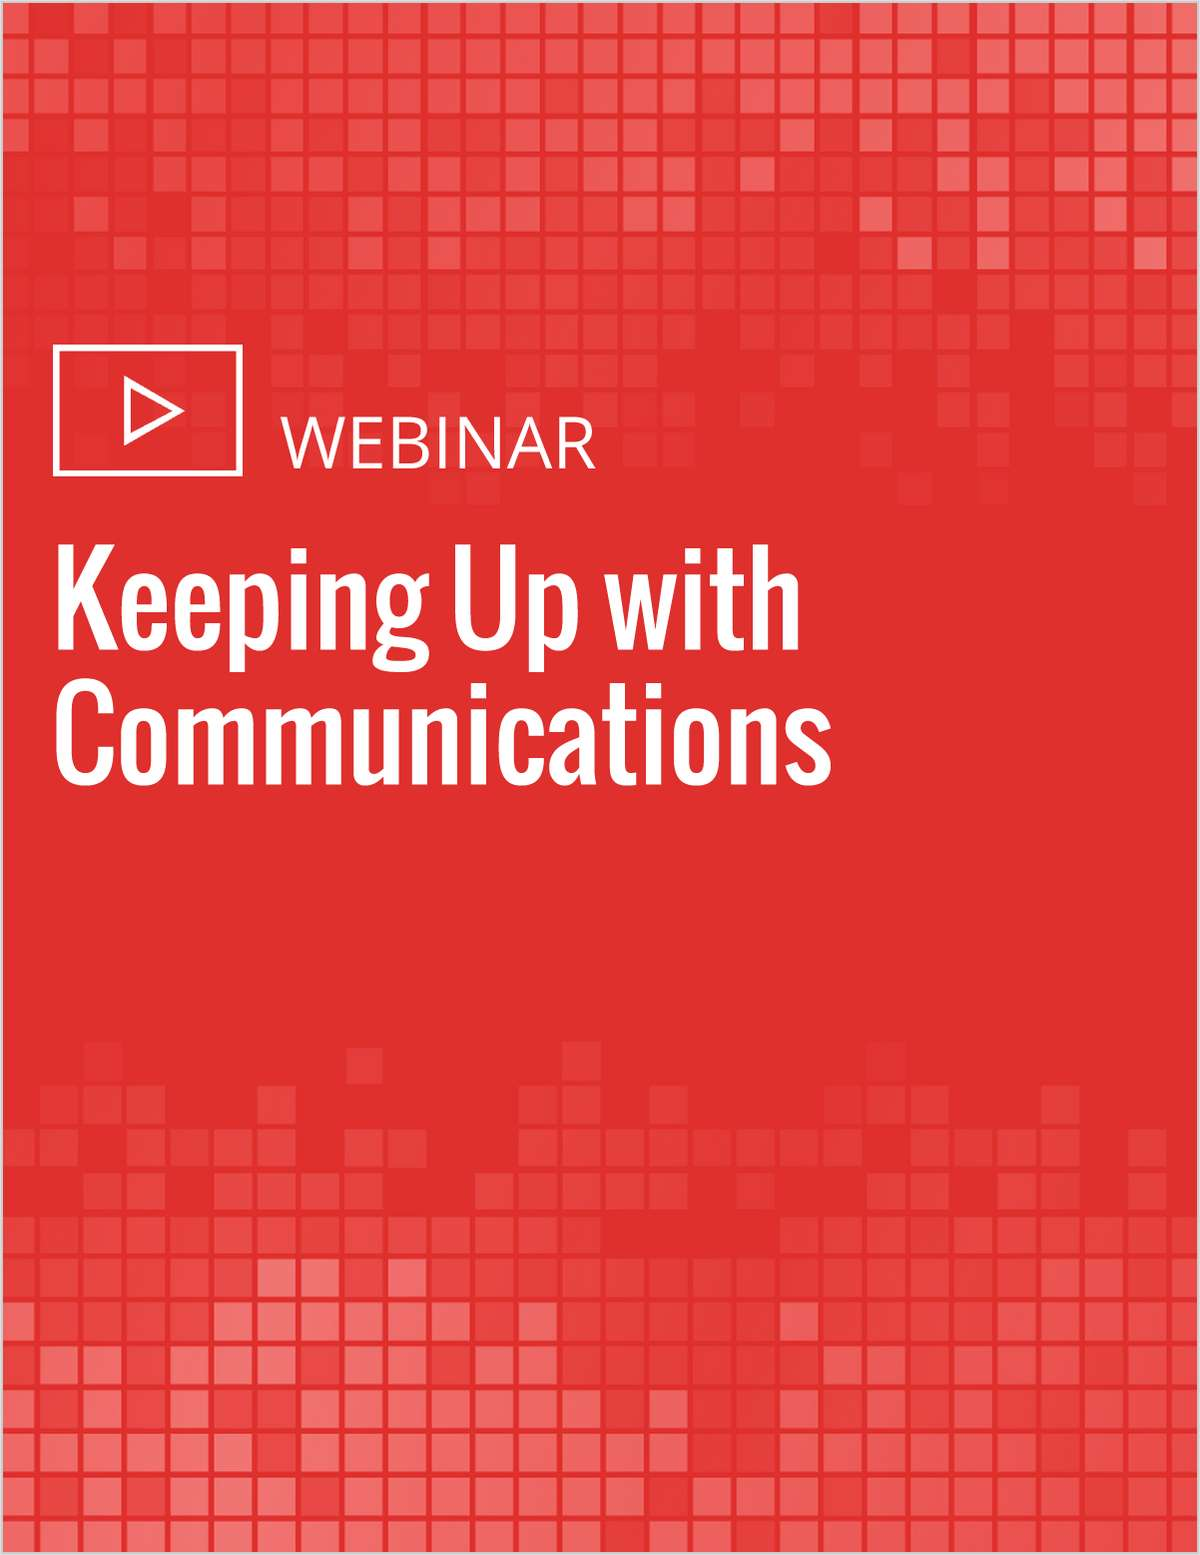 Keeping Up with Communications